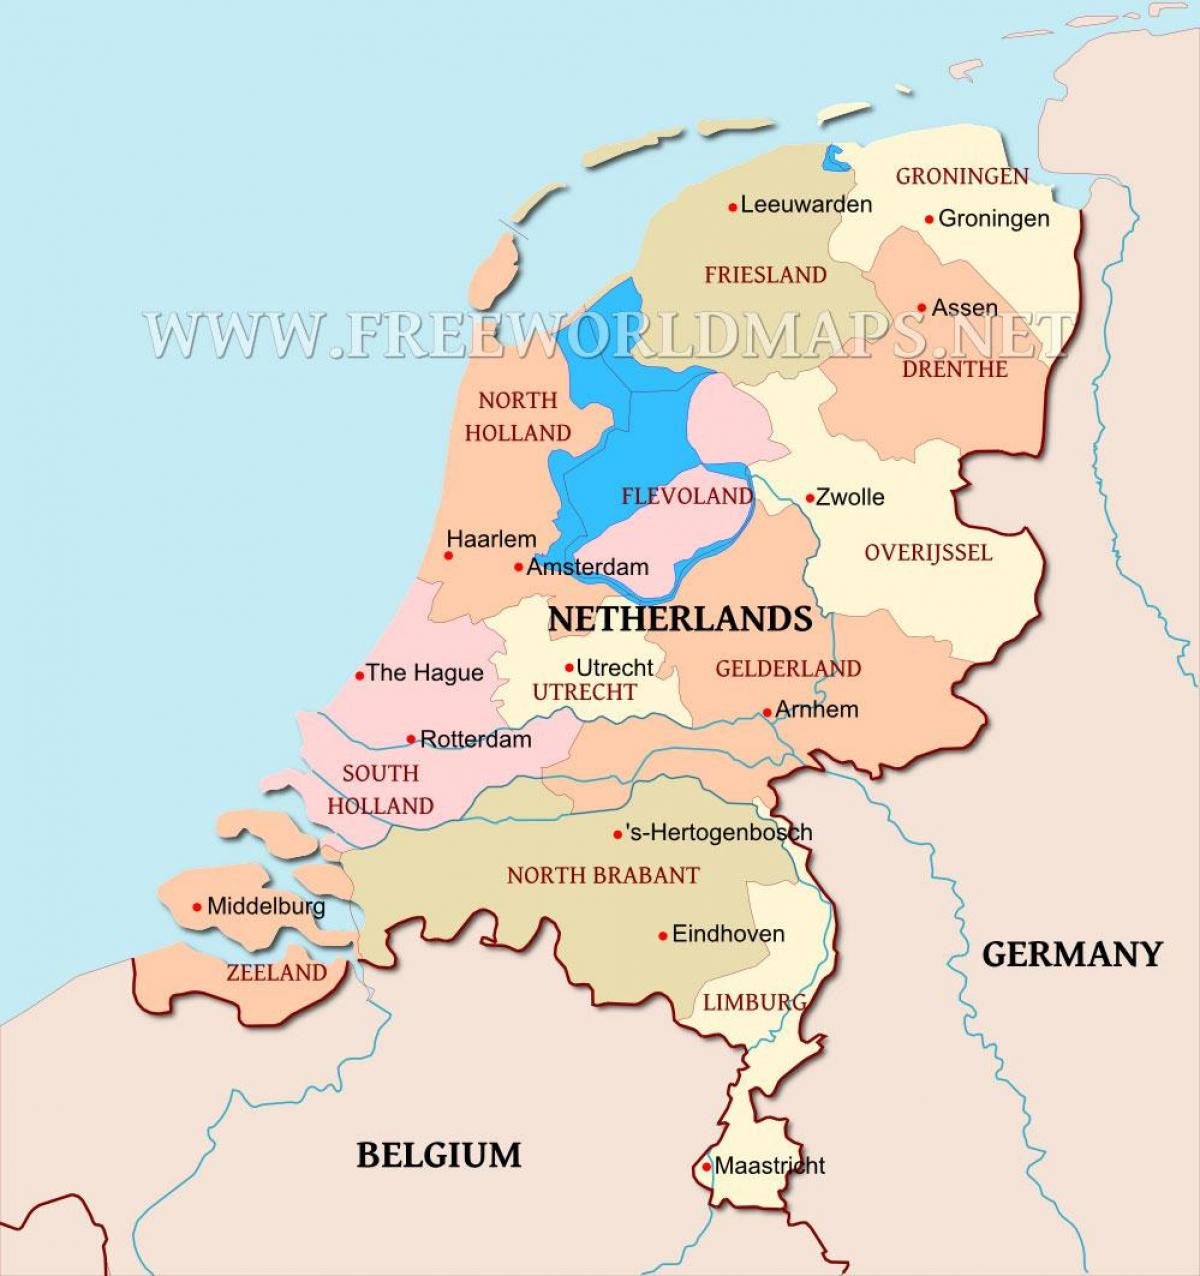 Netherland map Netherlands on the map Western Europe Europe